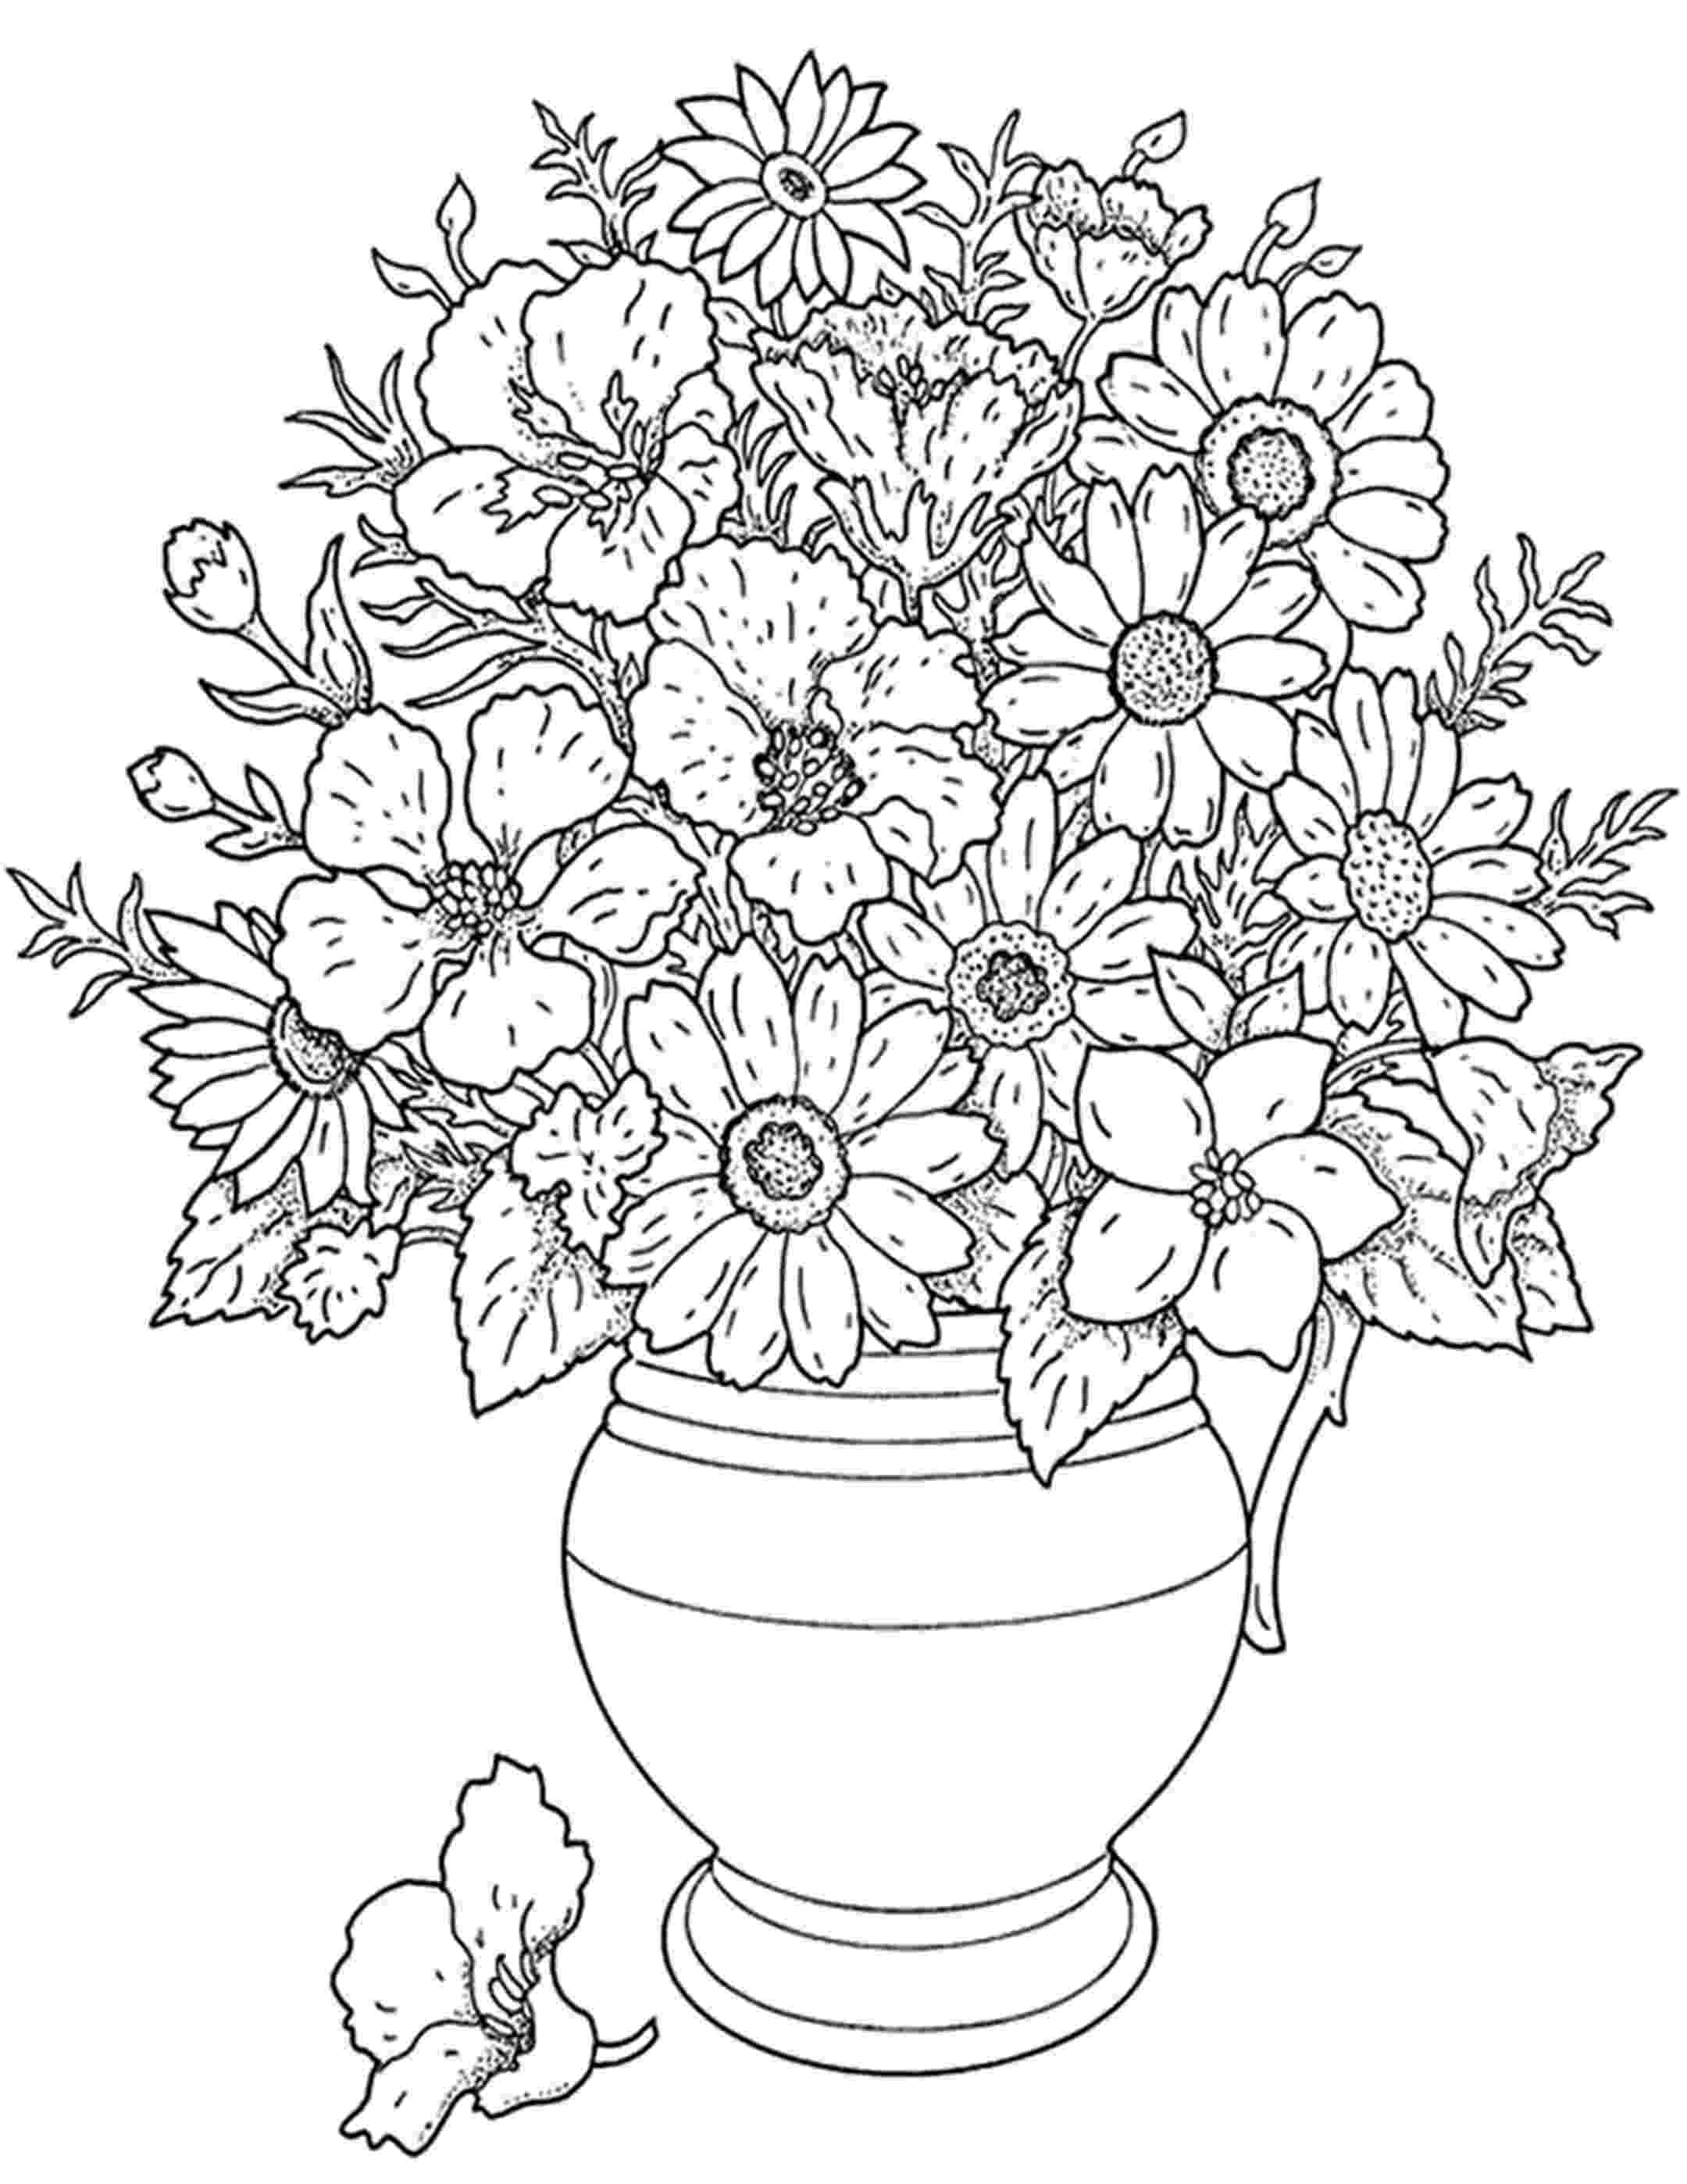 flower coloring pages printables free printable flower coloring pages for kids cool2bkids pages printables flower coloring